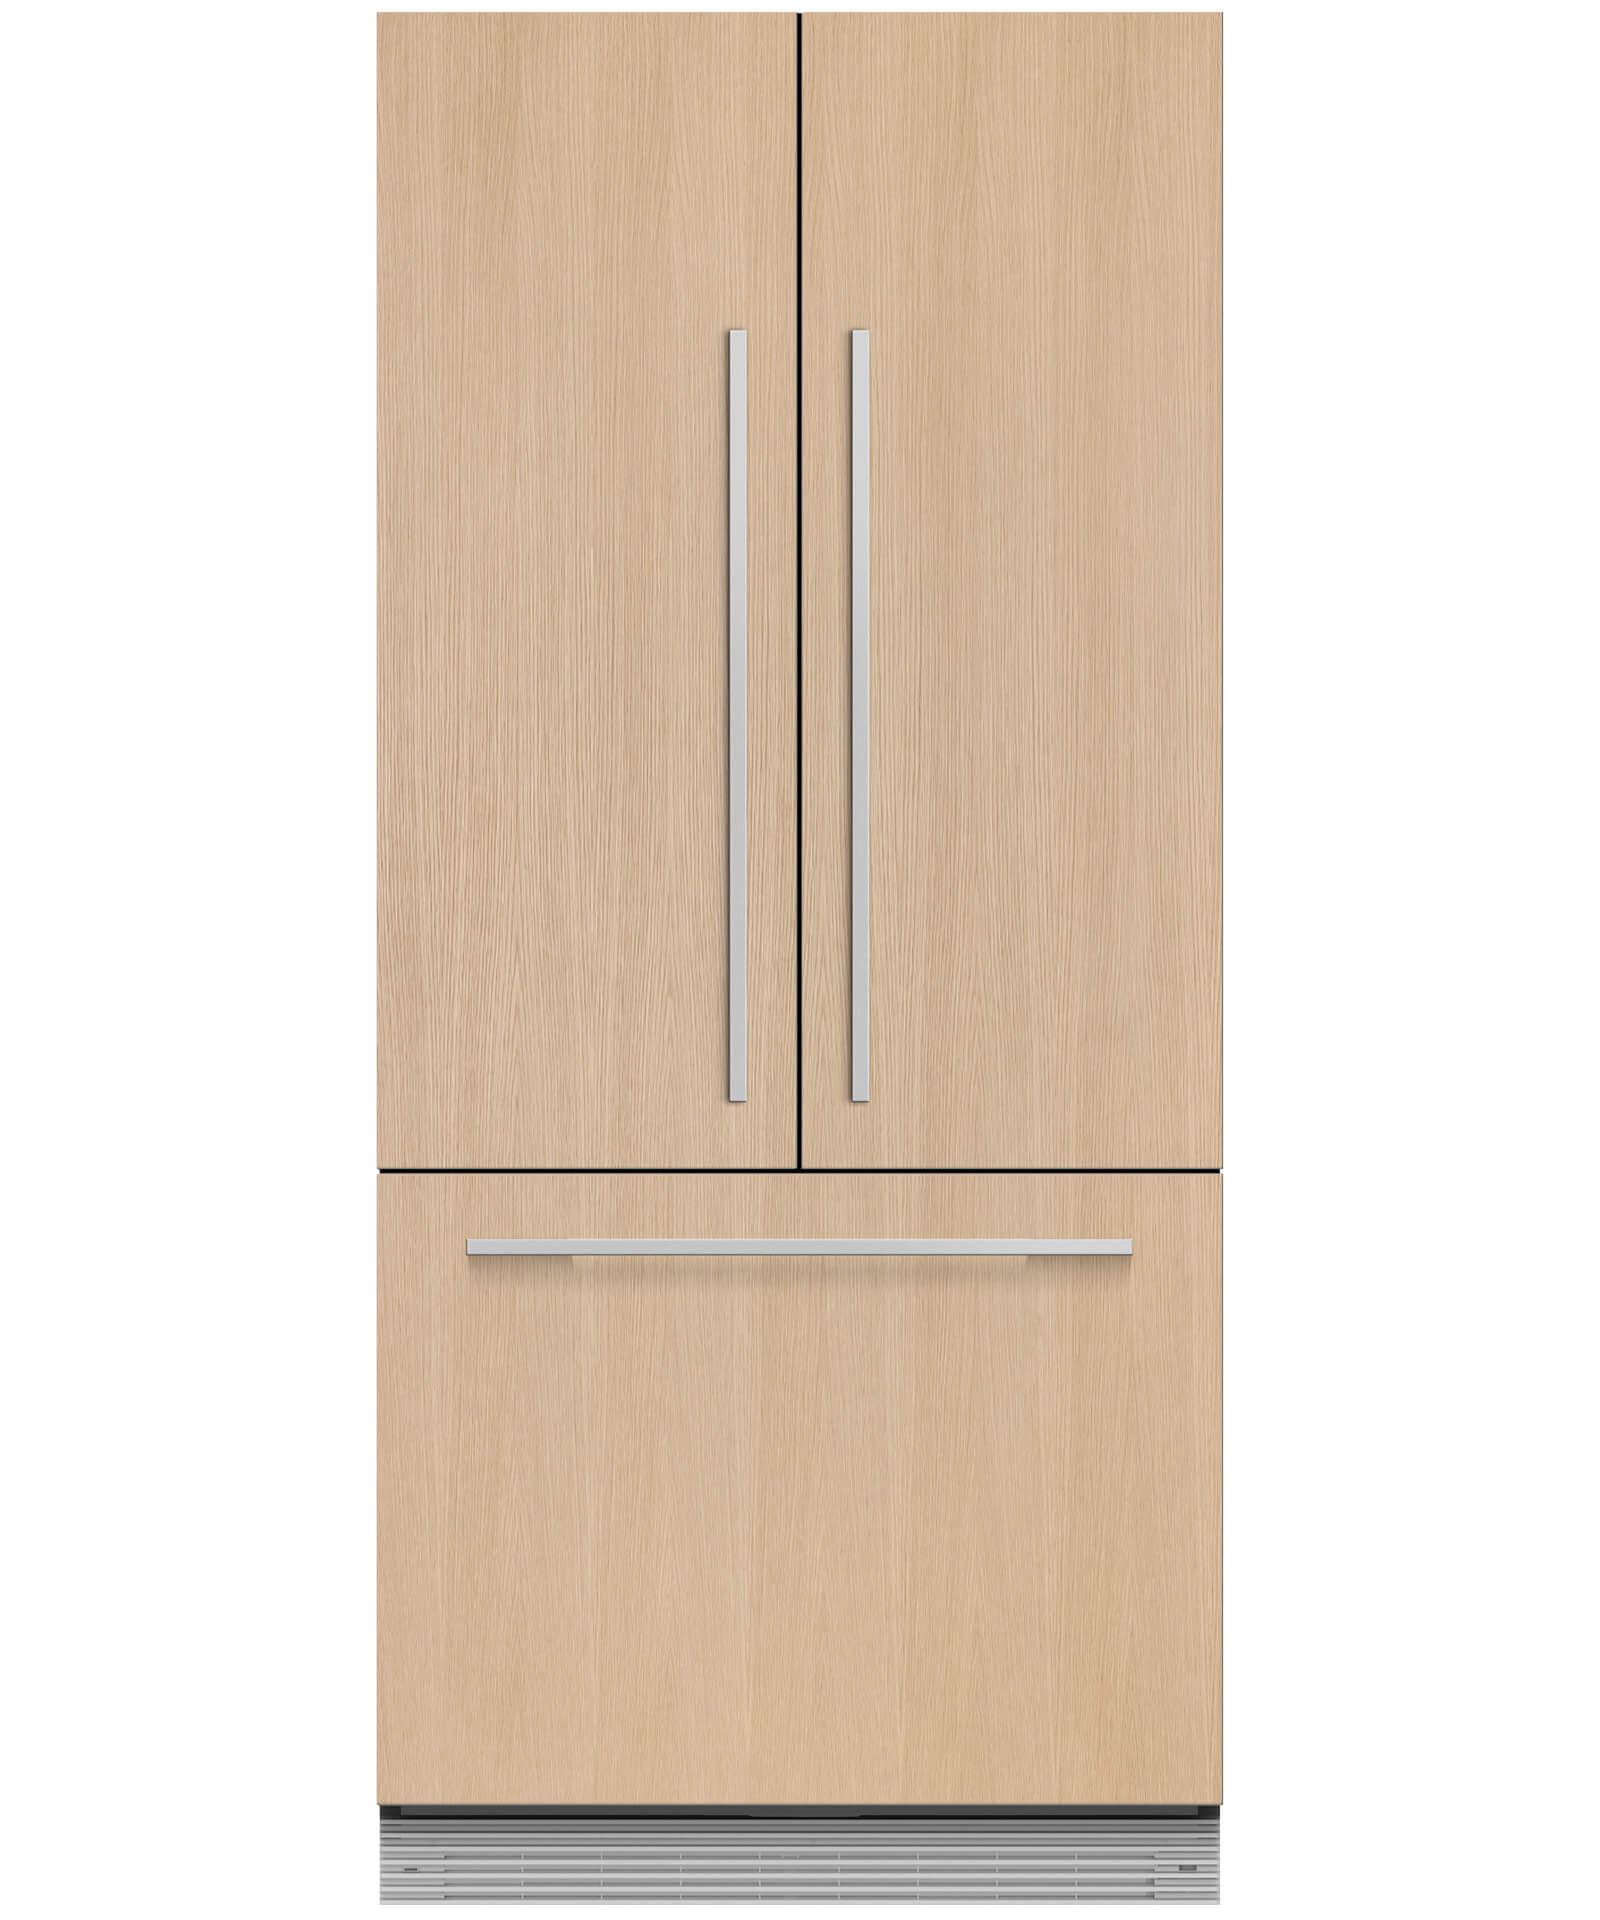 RS80A1 - Integrated French Door Refrigerator, 800mm - 25616